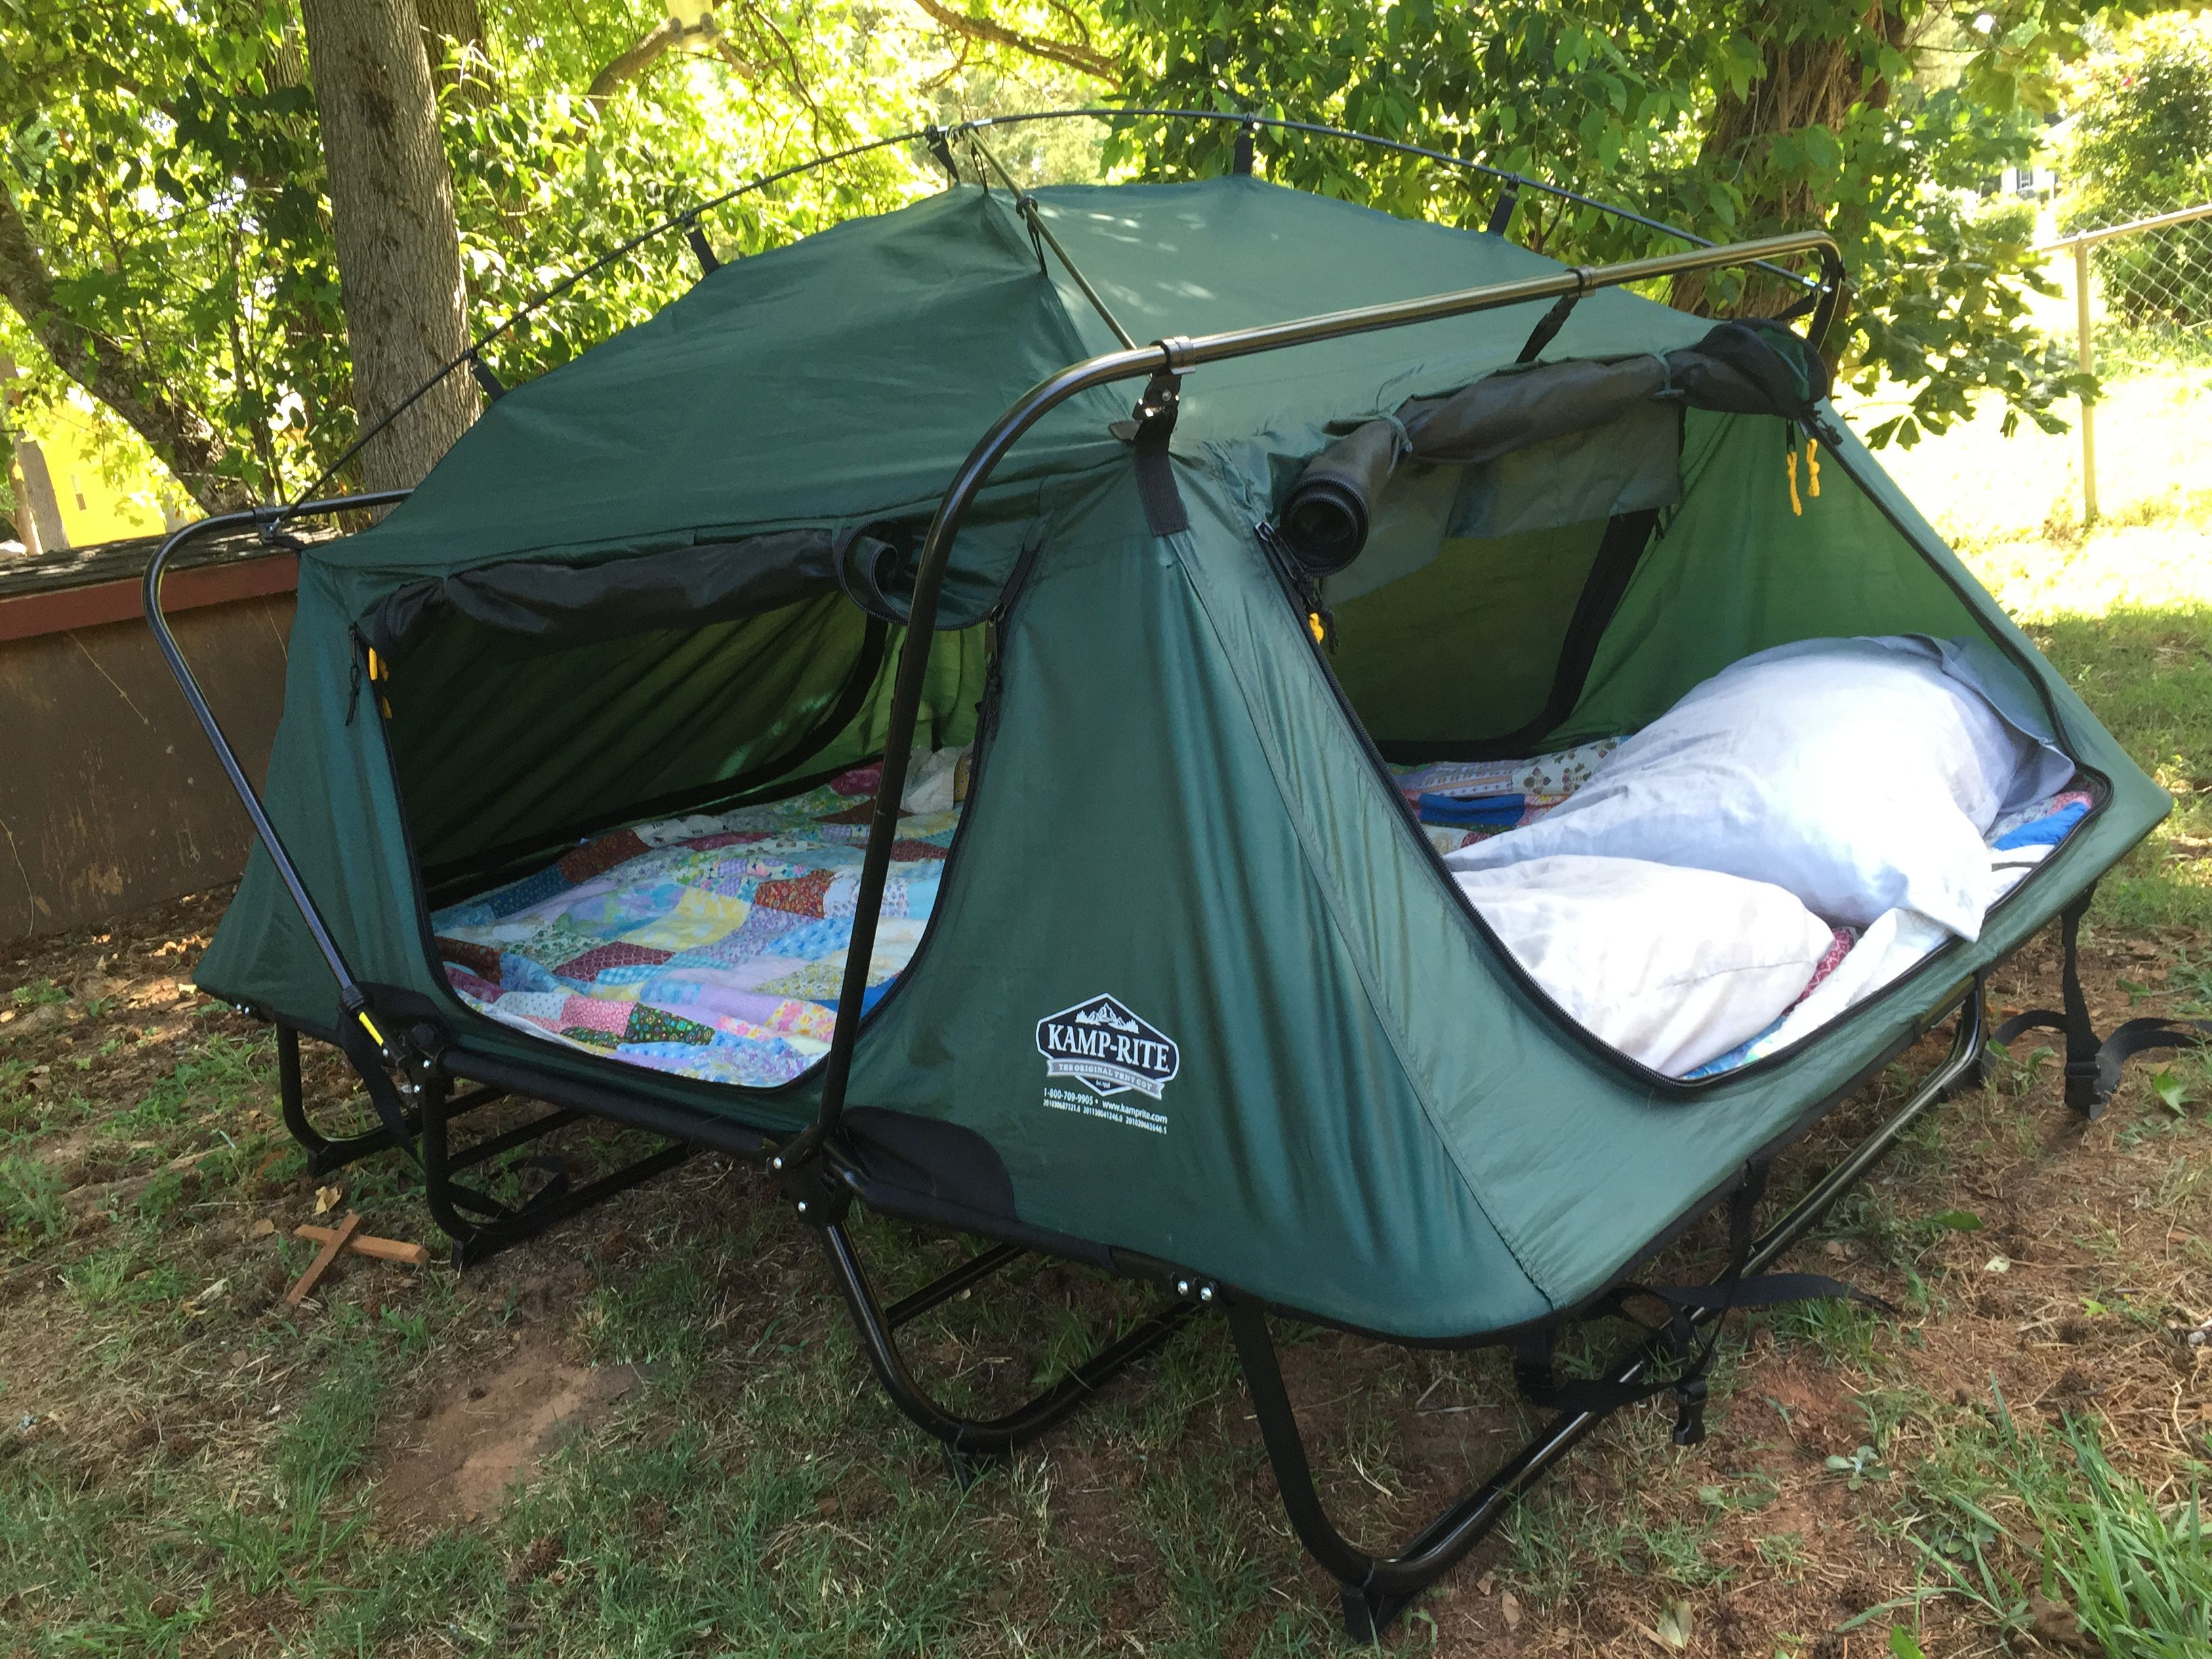 The 25+ best Tent cot ideas on Pinterest | C&ing stuff Cool c&ing gear and Tent chair. & The 25+ best Tent cot ideas on Pinterest | Camping stuff Cool ...